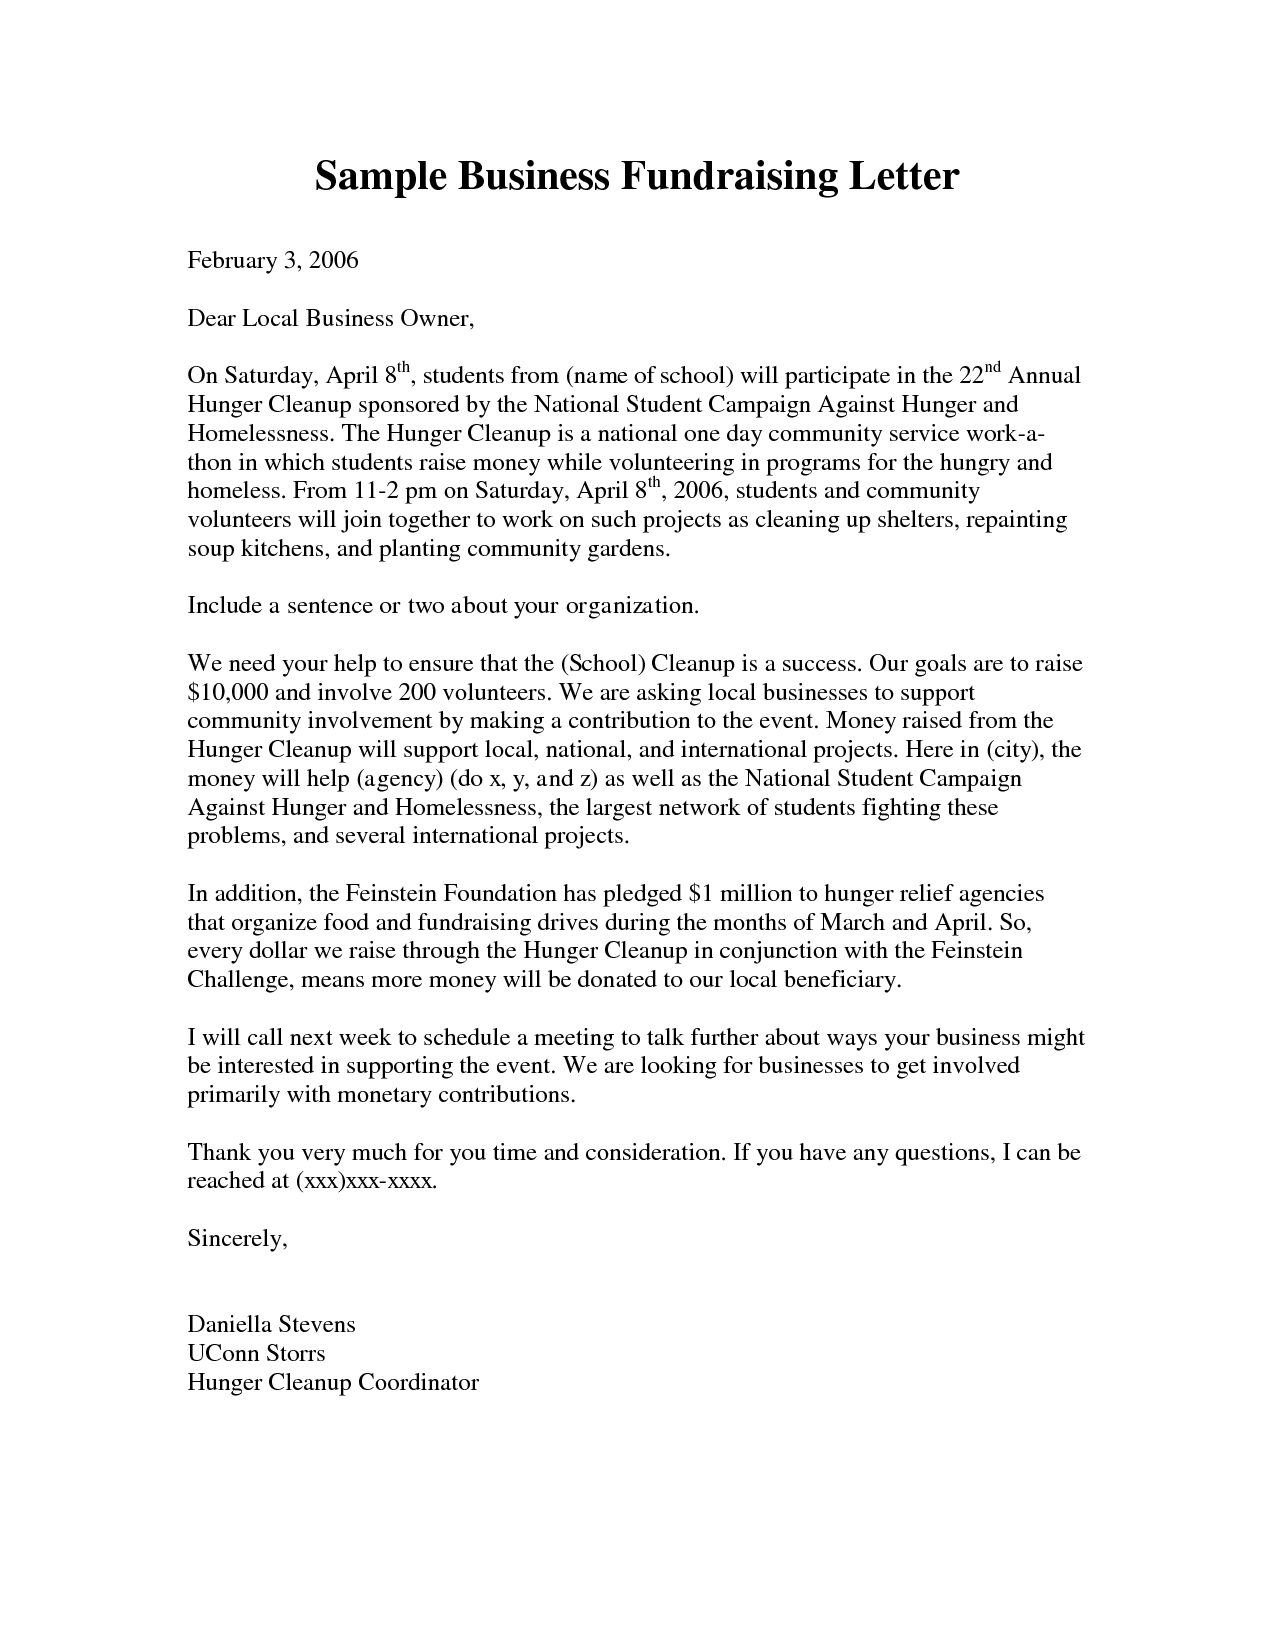 Business Fundraising Letter Sample Fundraising Letters